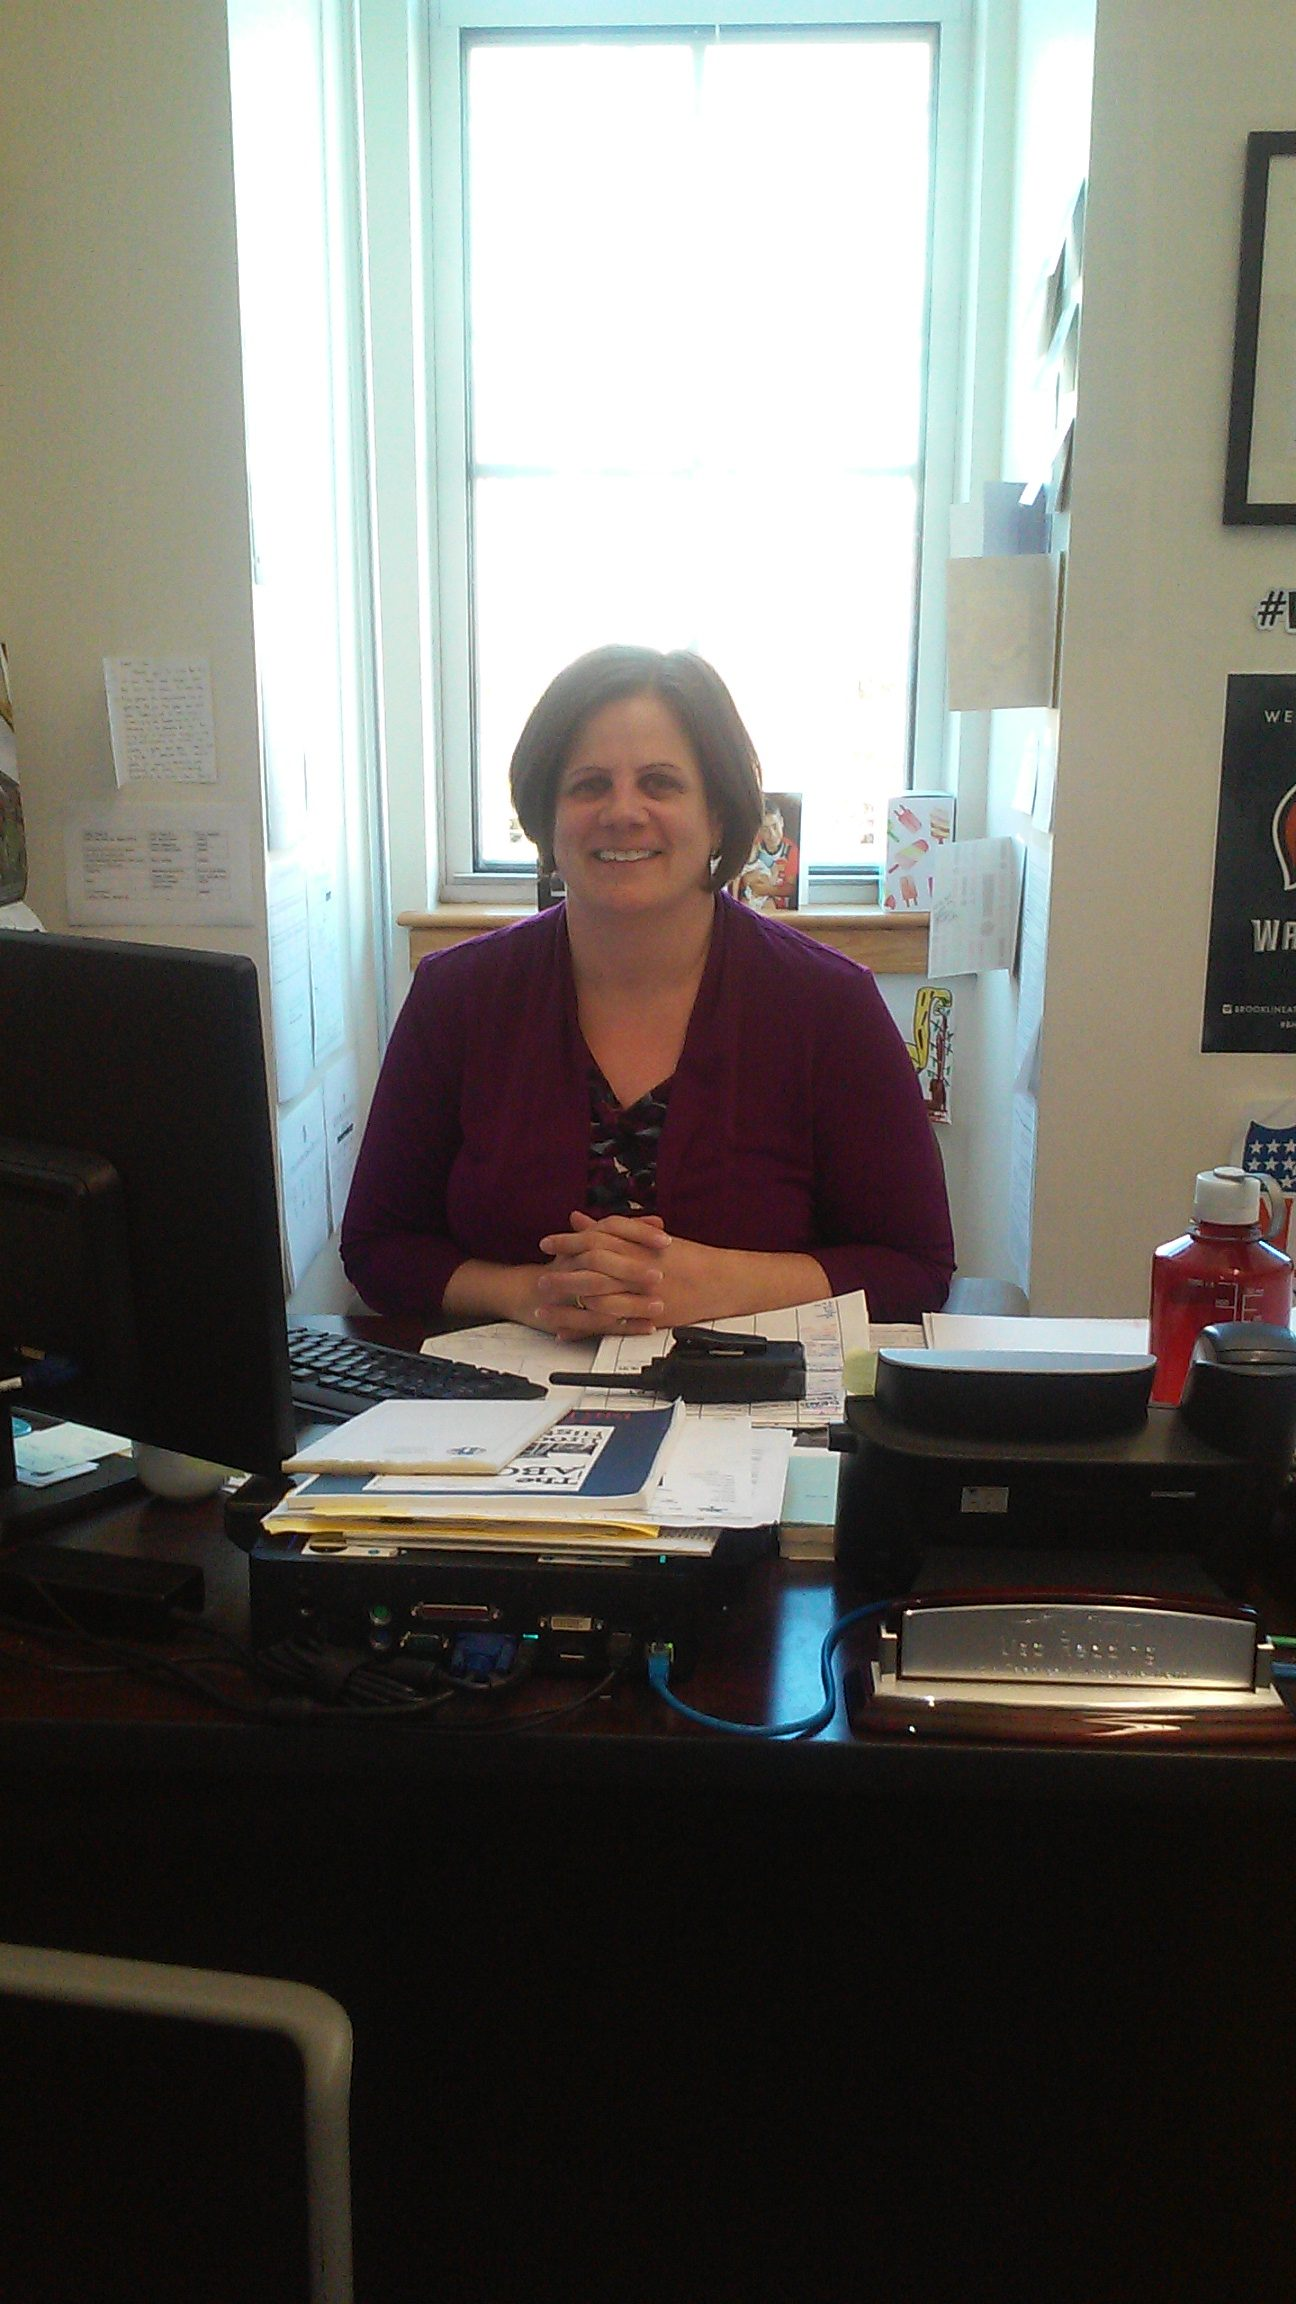 Interim Dean Lisa Redding received a promotion this year, and is now serving as the dean of students.